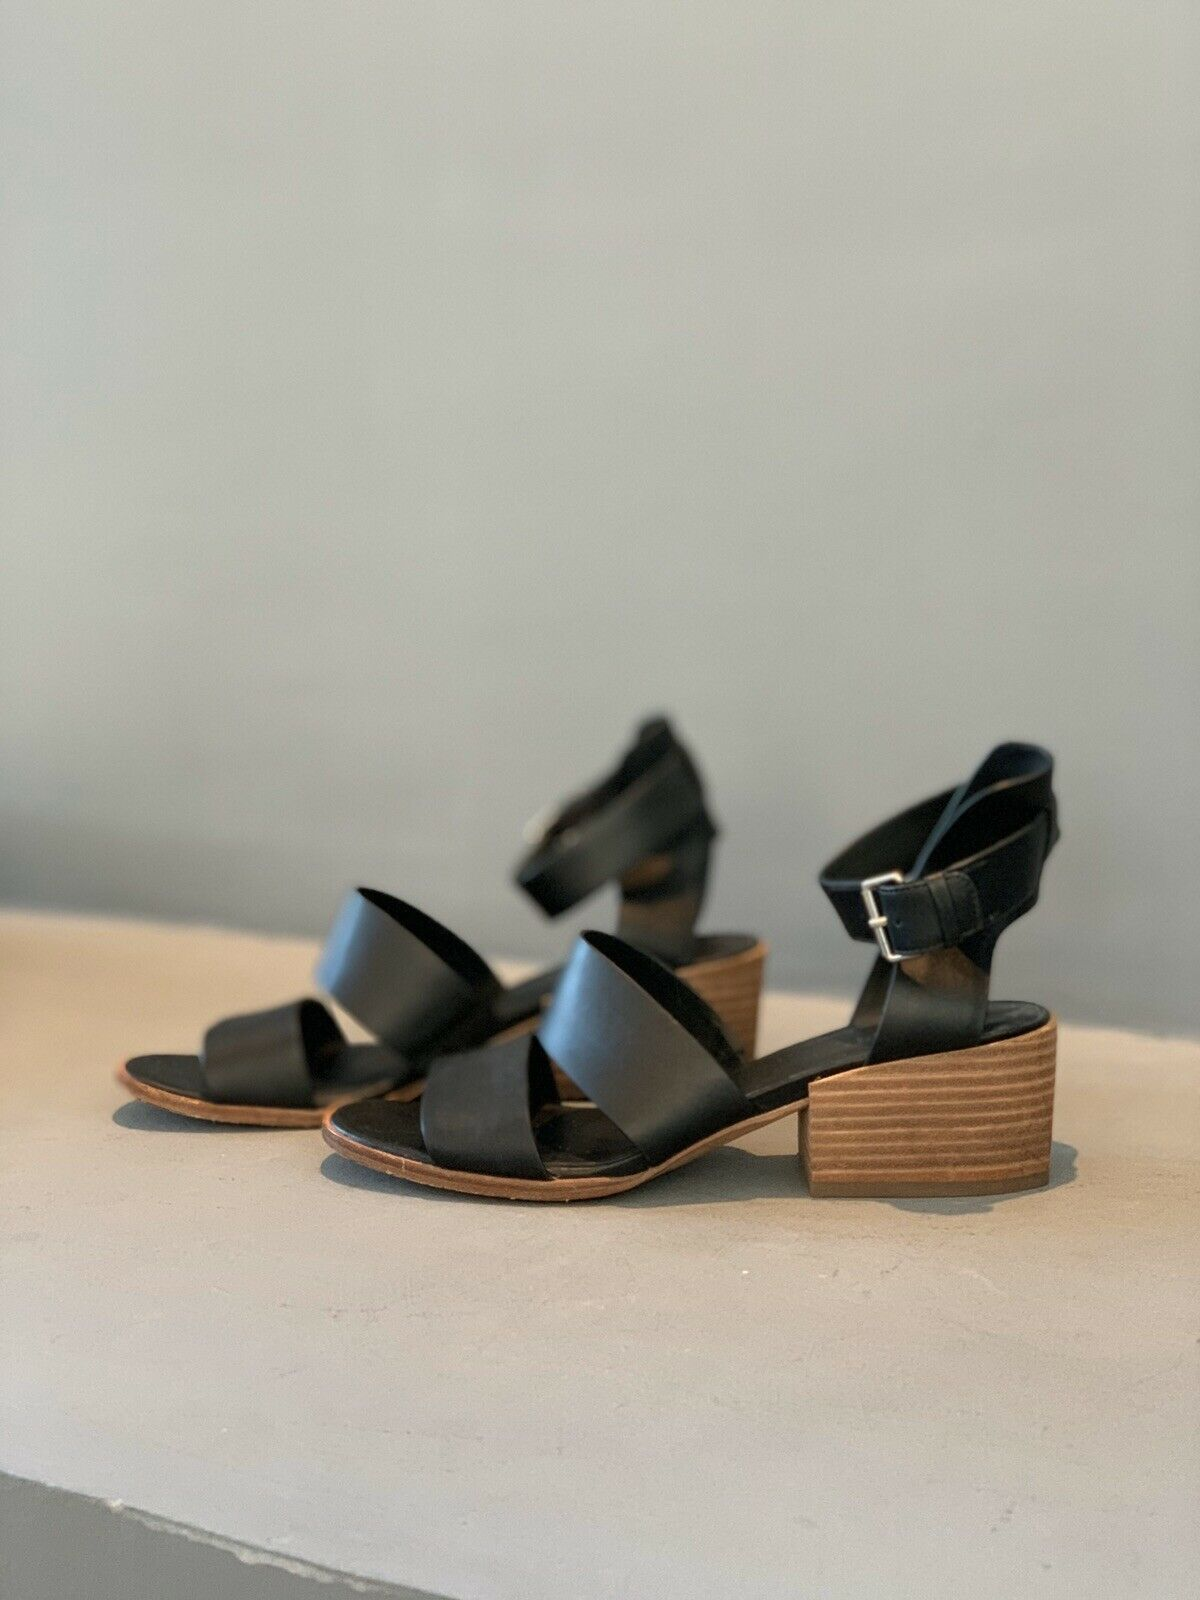 Vince Strappy Sandals - image 3